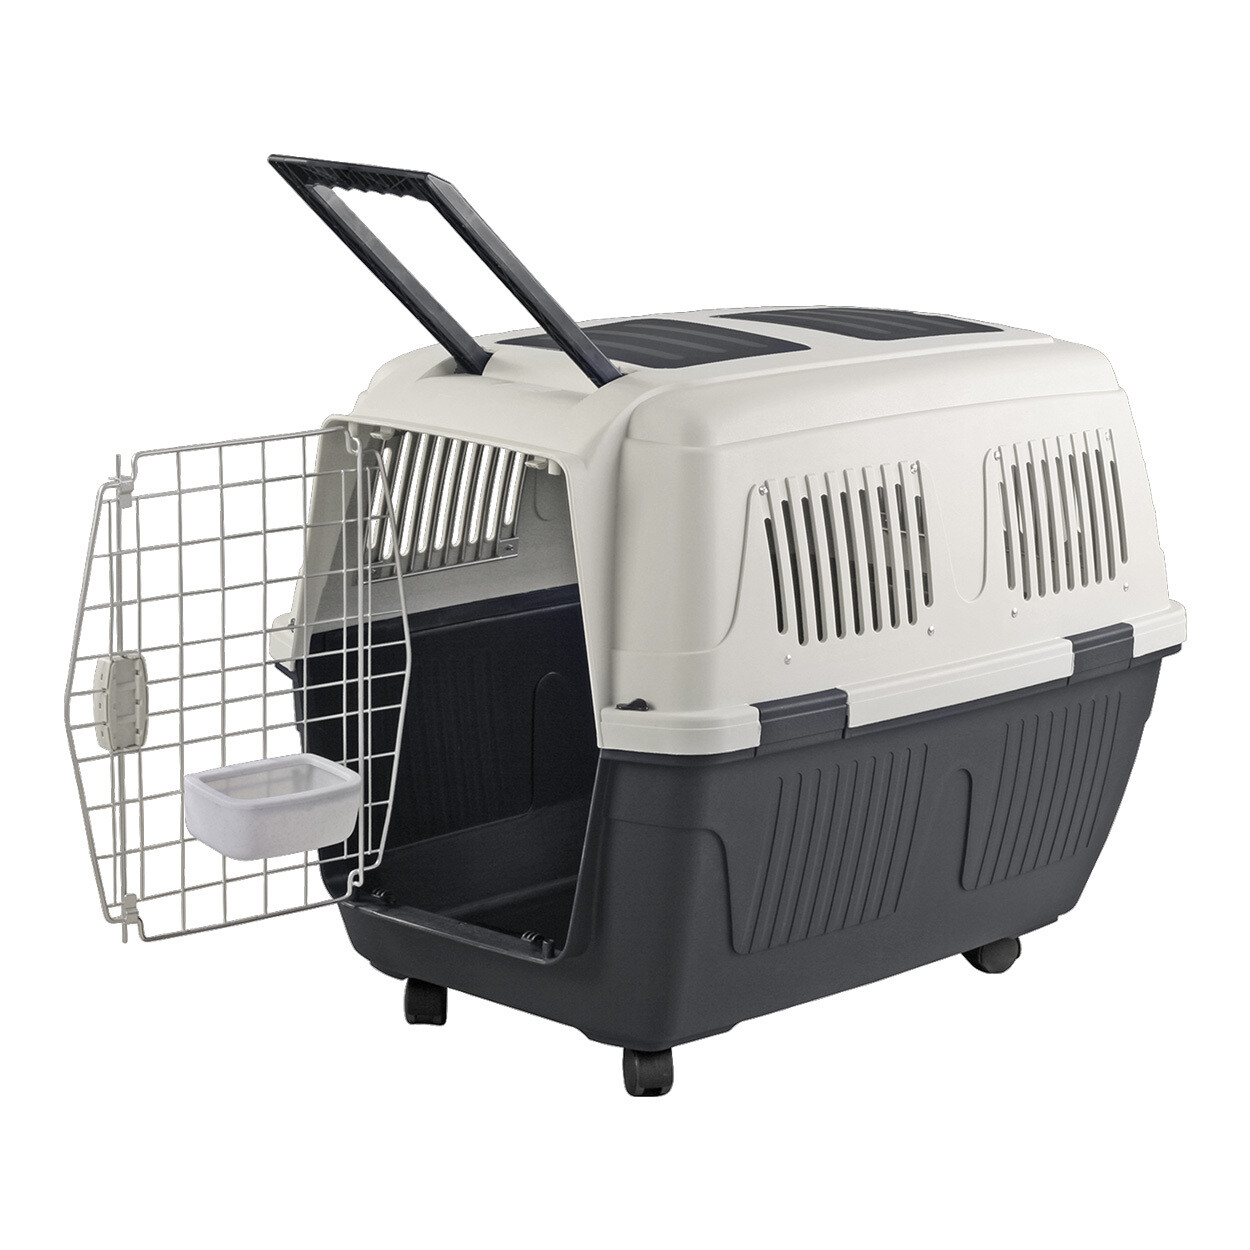 ANIMAL TREASURES DELUXE DOG KENNEL - XXL